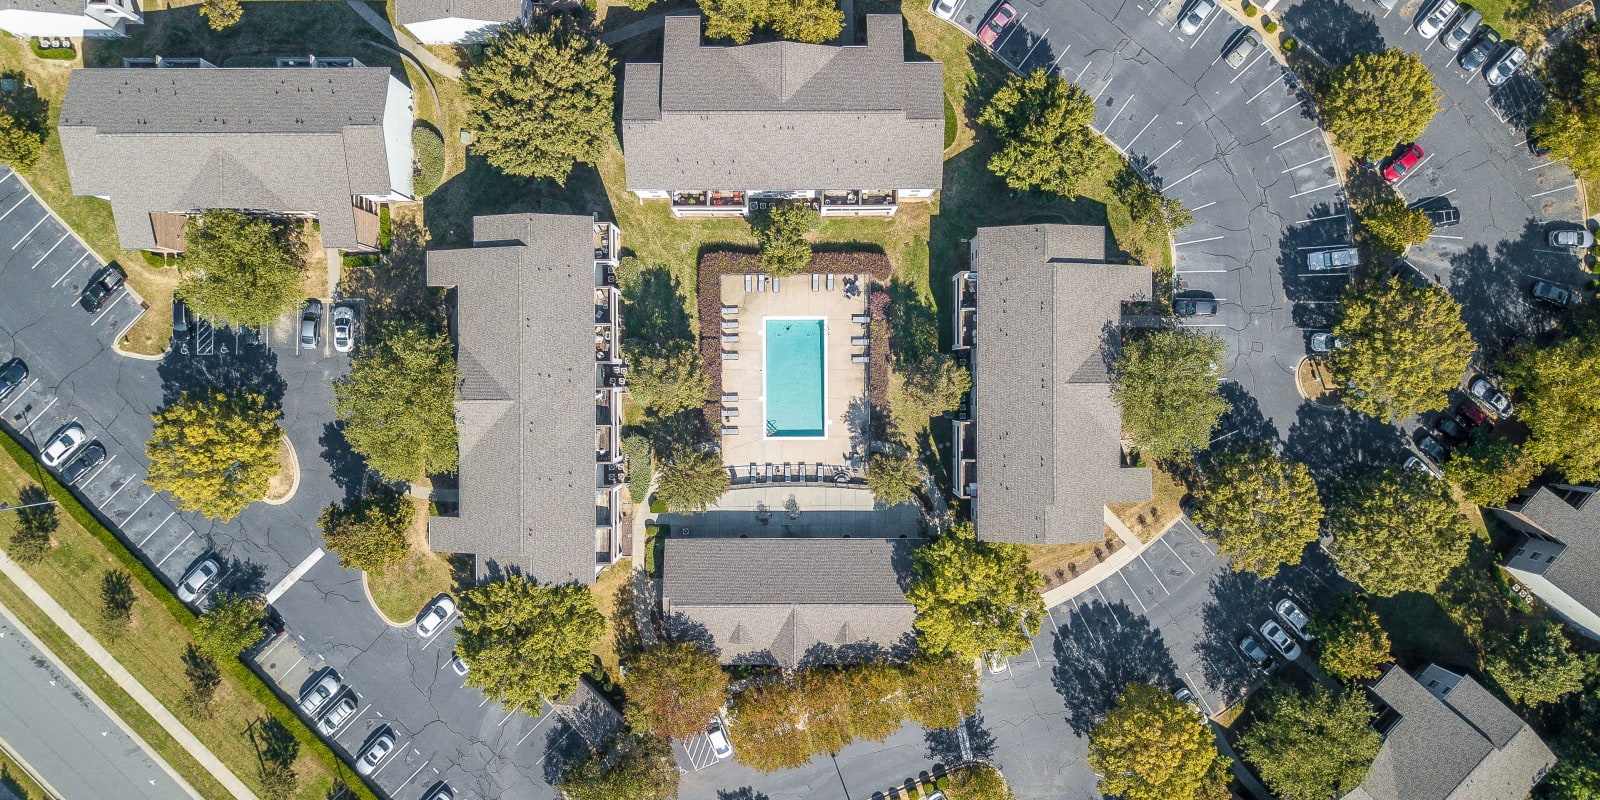 Ariel View at The Village at Brierfield Apartment Homes in Charlotte, North Carolina